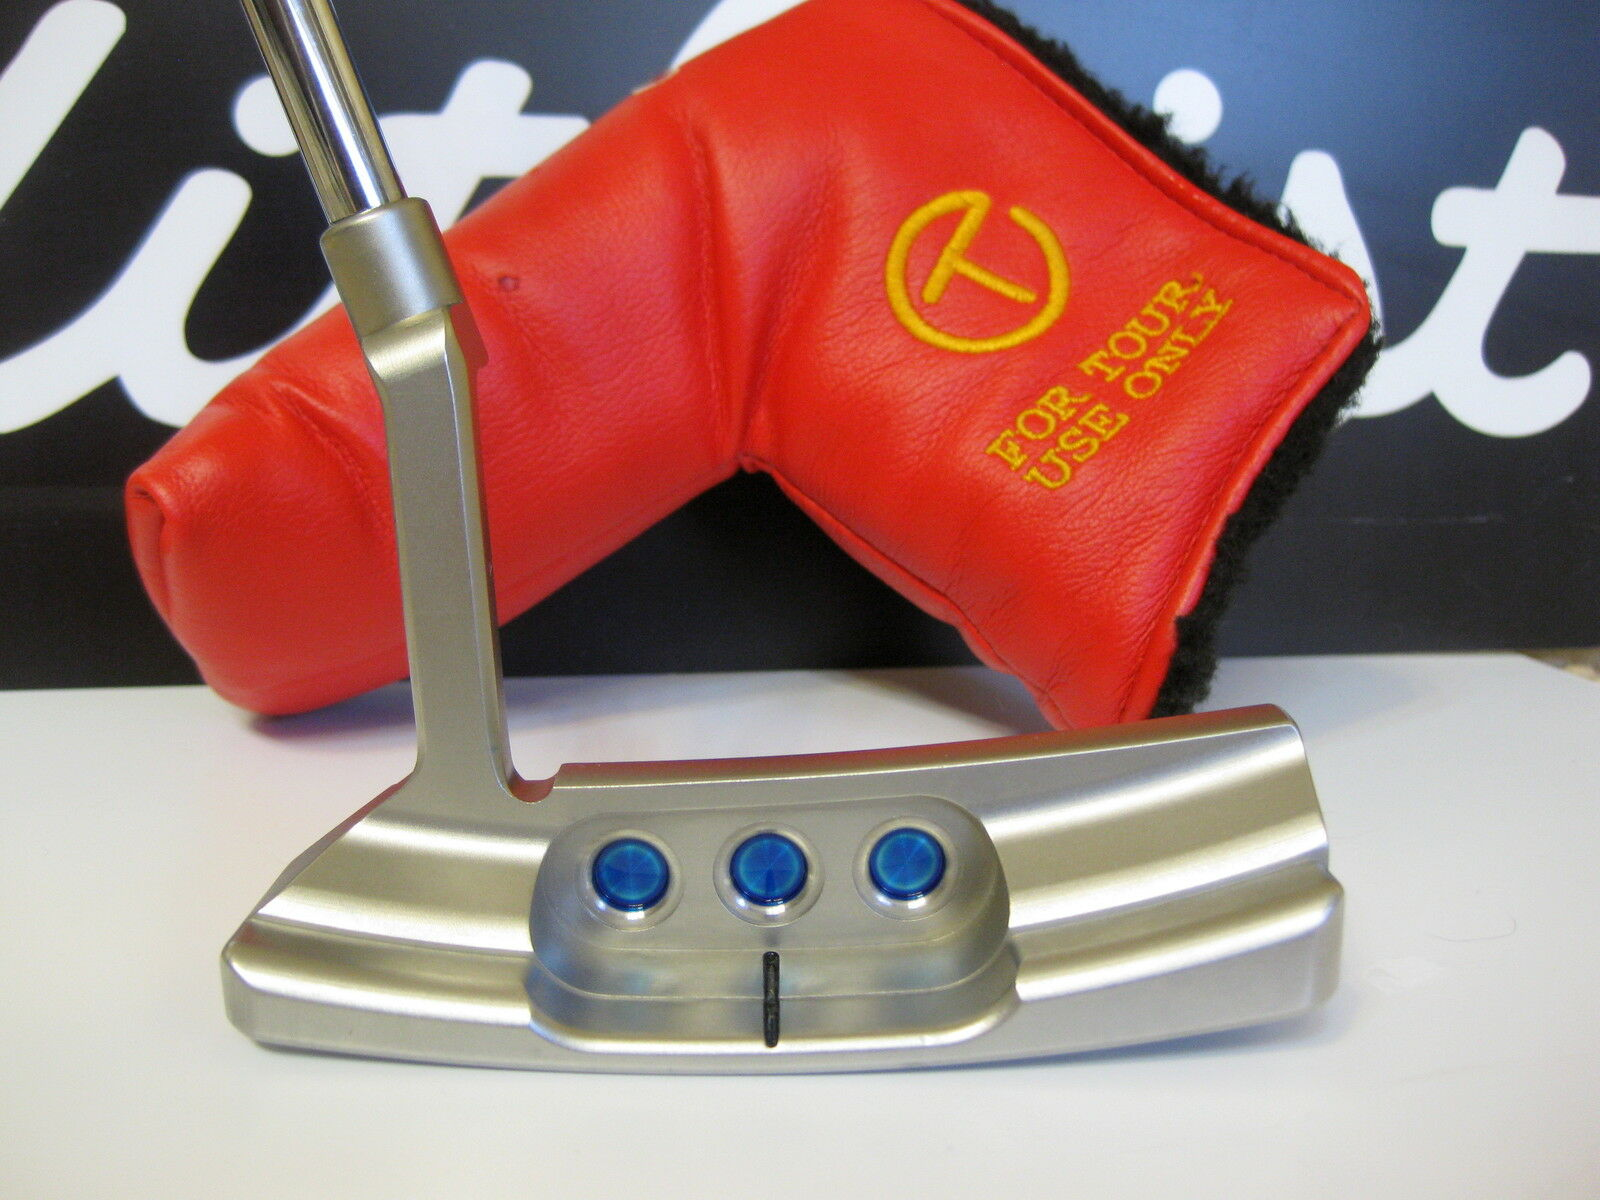 PUTTERS BY DESIGN